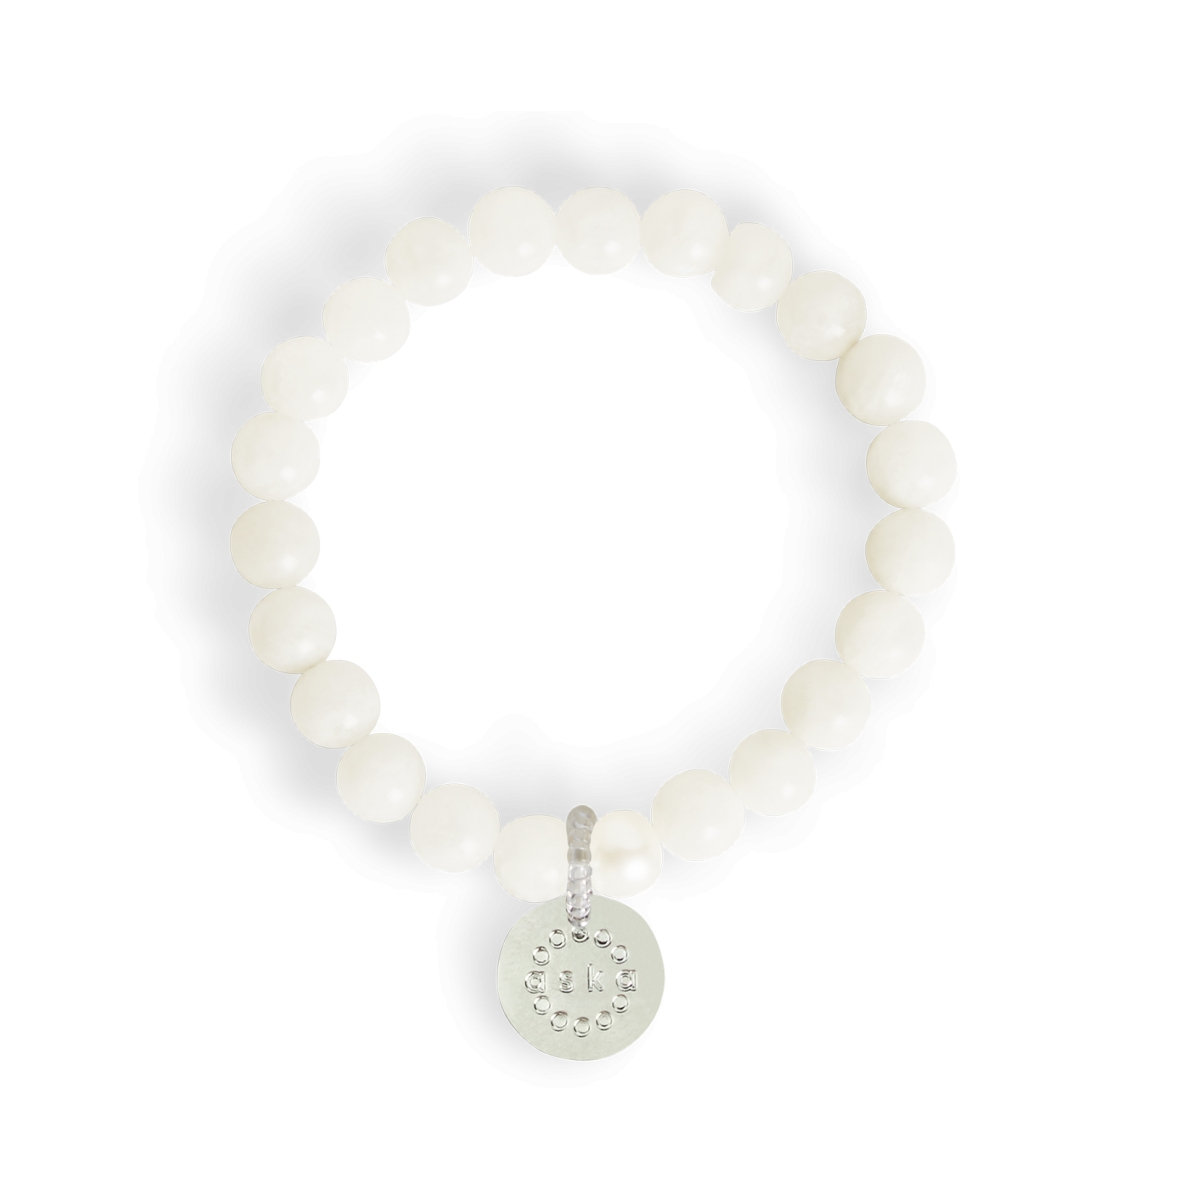 Aska Maternity Movement Bracelet-Moonstone Silver (NEW)